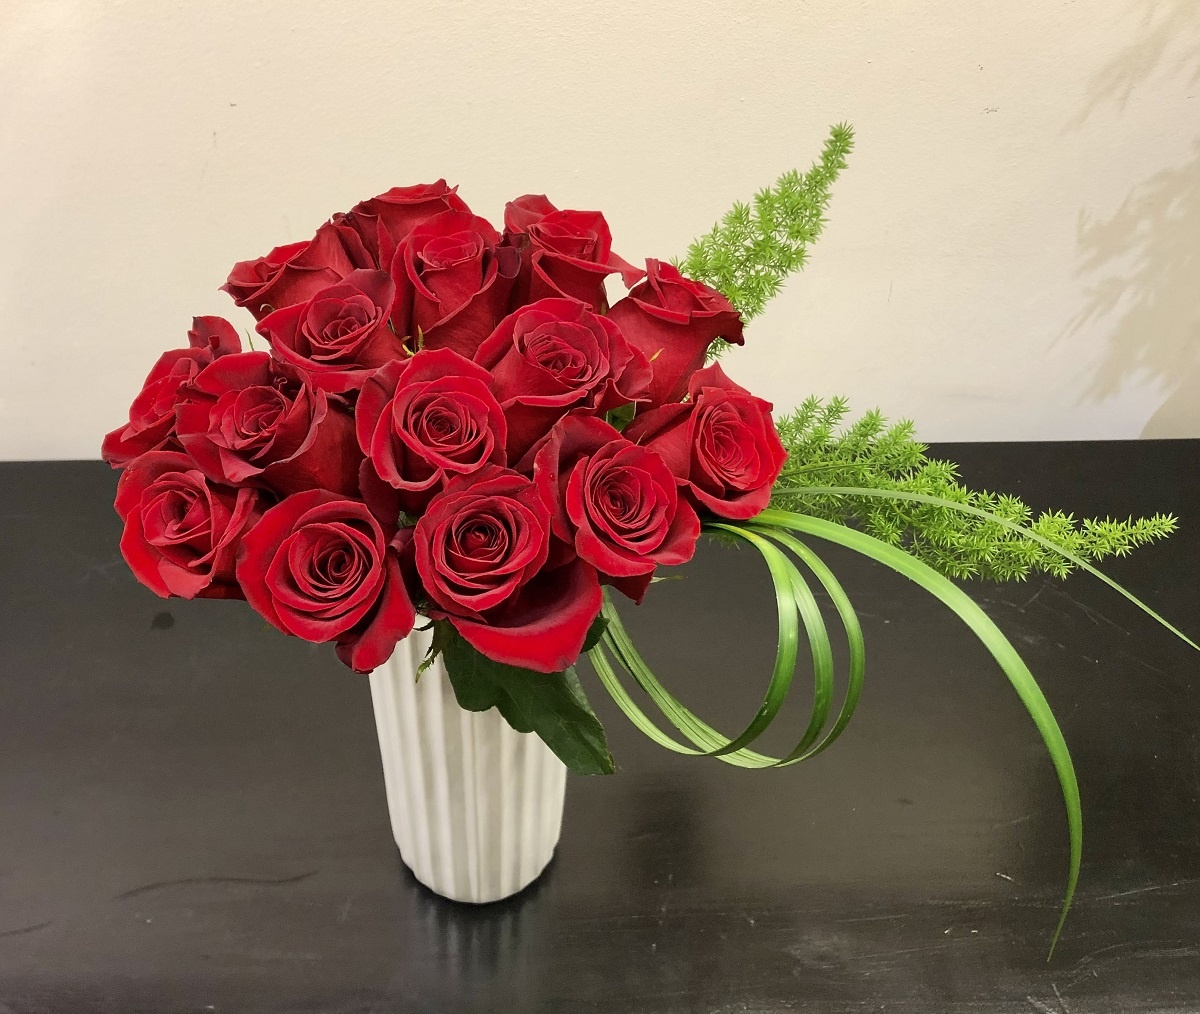 Red Roses Valentine's Day - Shop Evantine